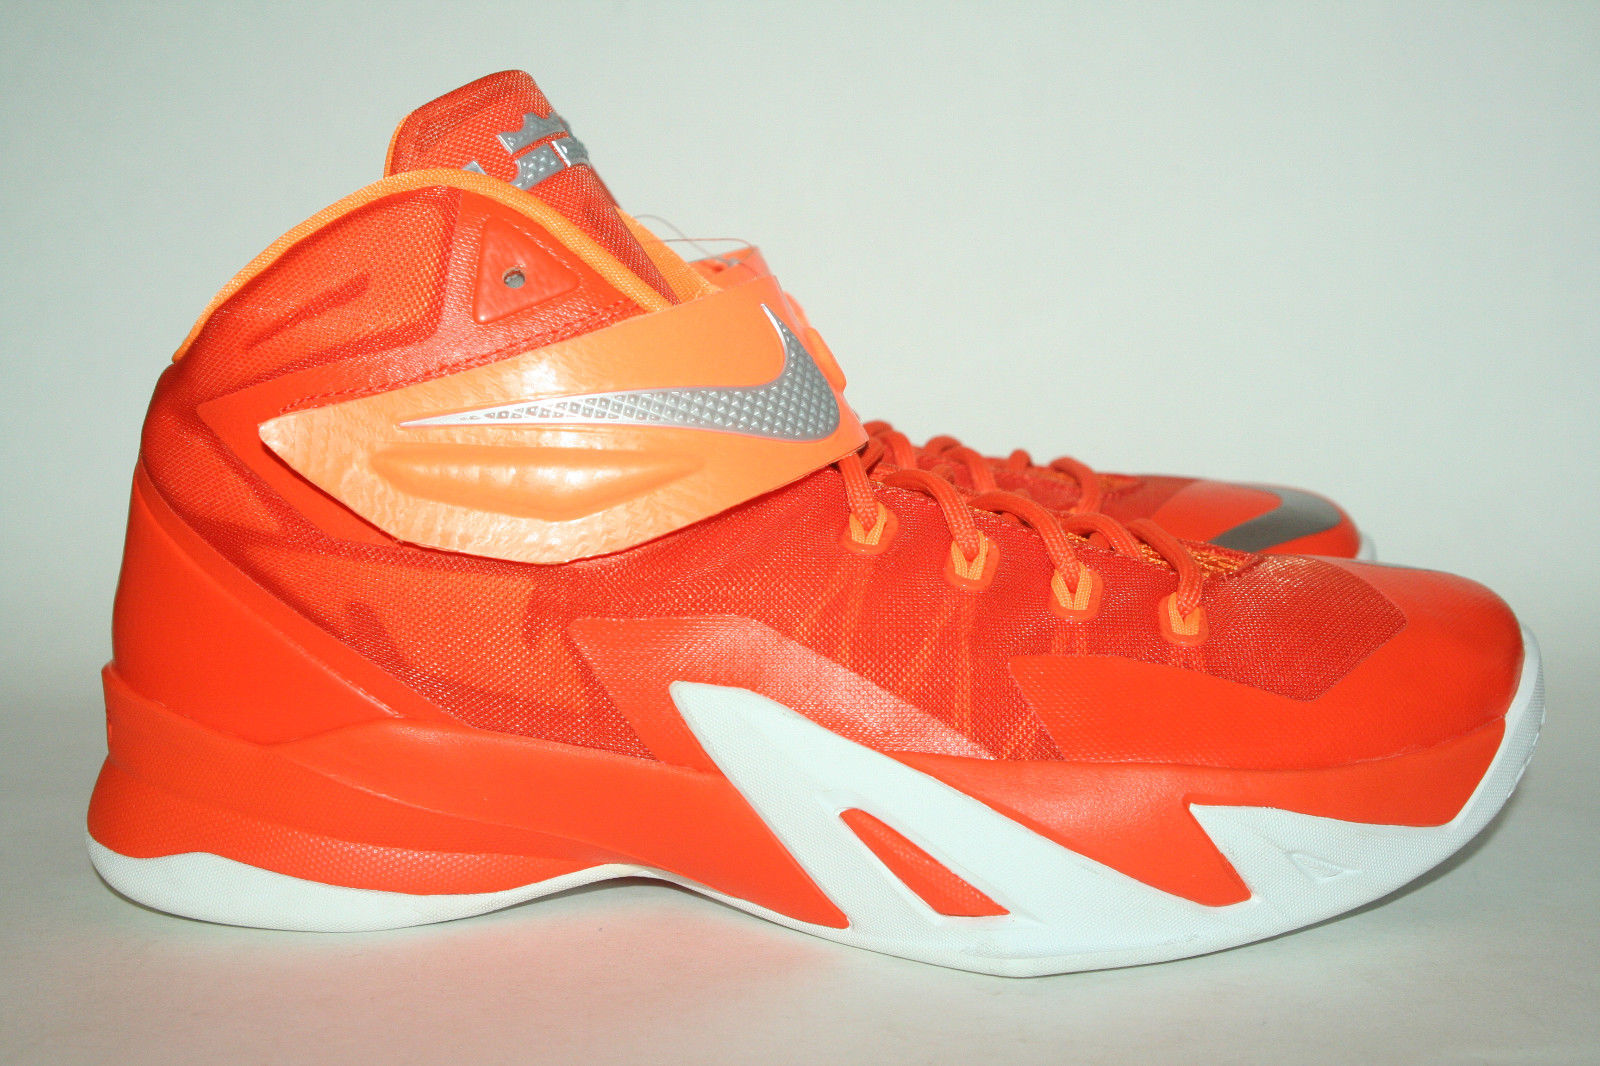 Nike Zoom Soldier 8  Fire and Ice  Samples  8e0017f01965